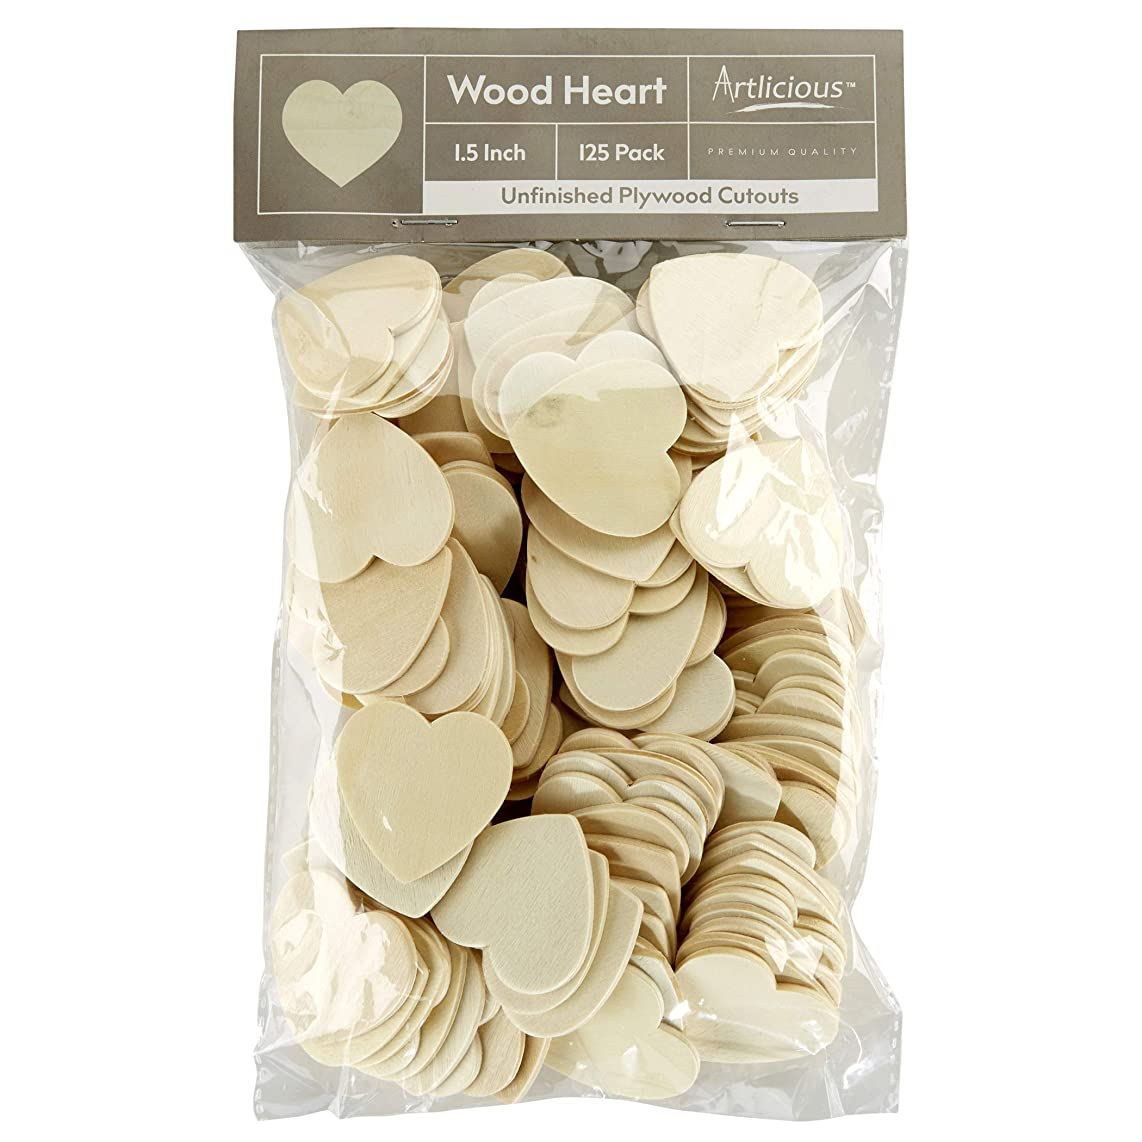 Artlicious - 125 Unfinished Wooden Heart Cutouts - 1.5